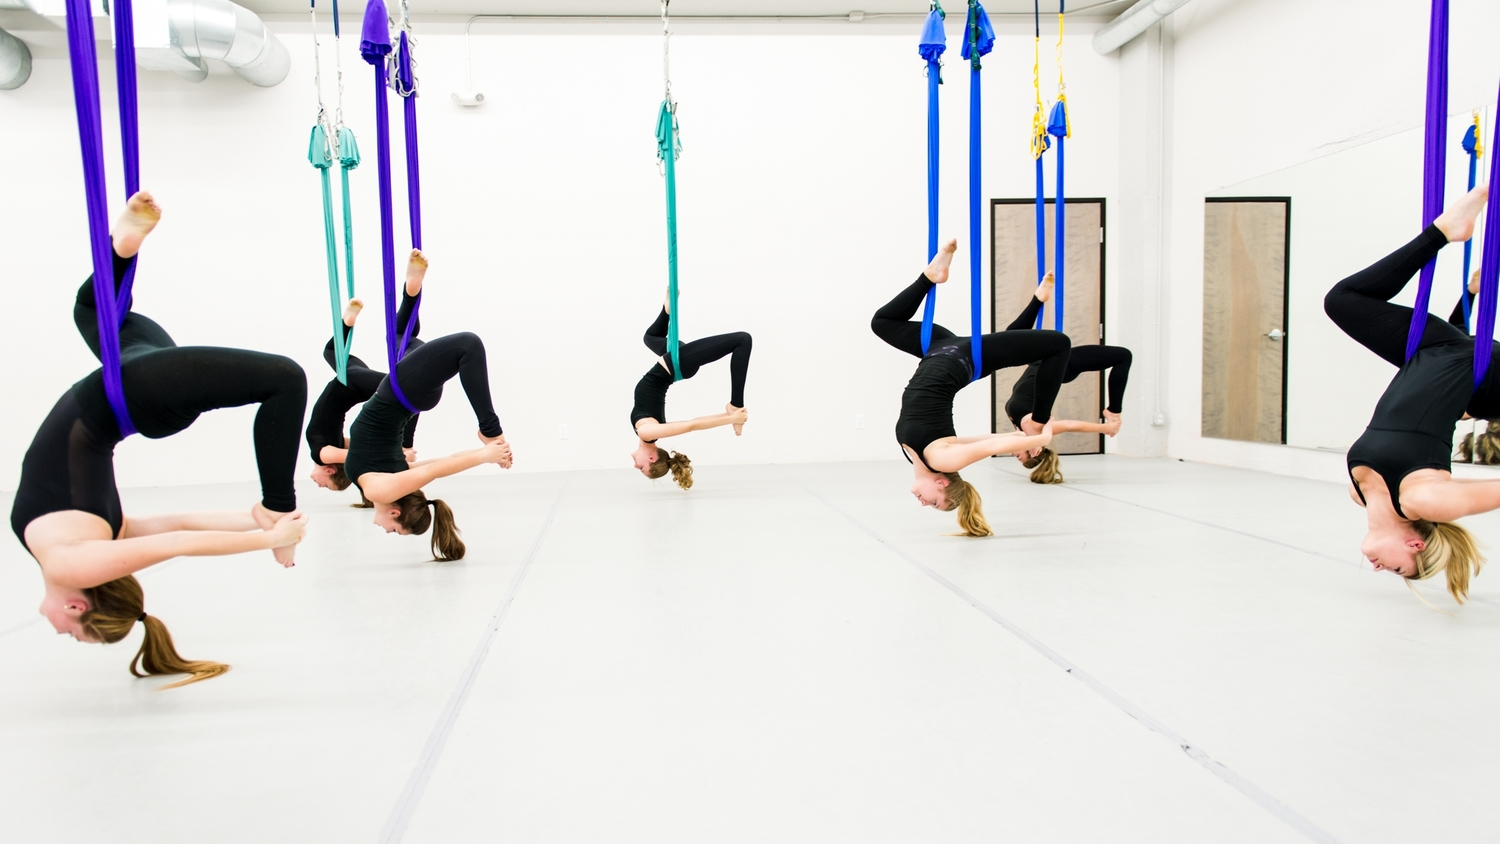 Aerial Yoga: An Experiment With Yoga - Women Fitness